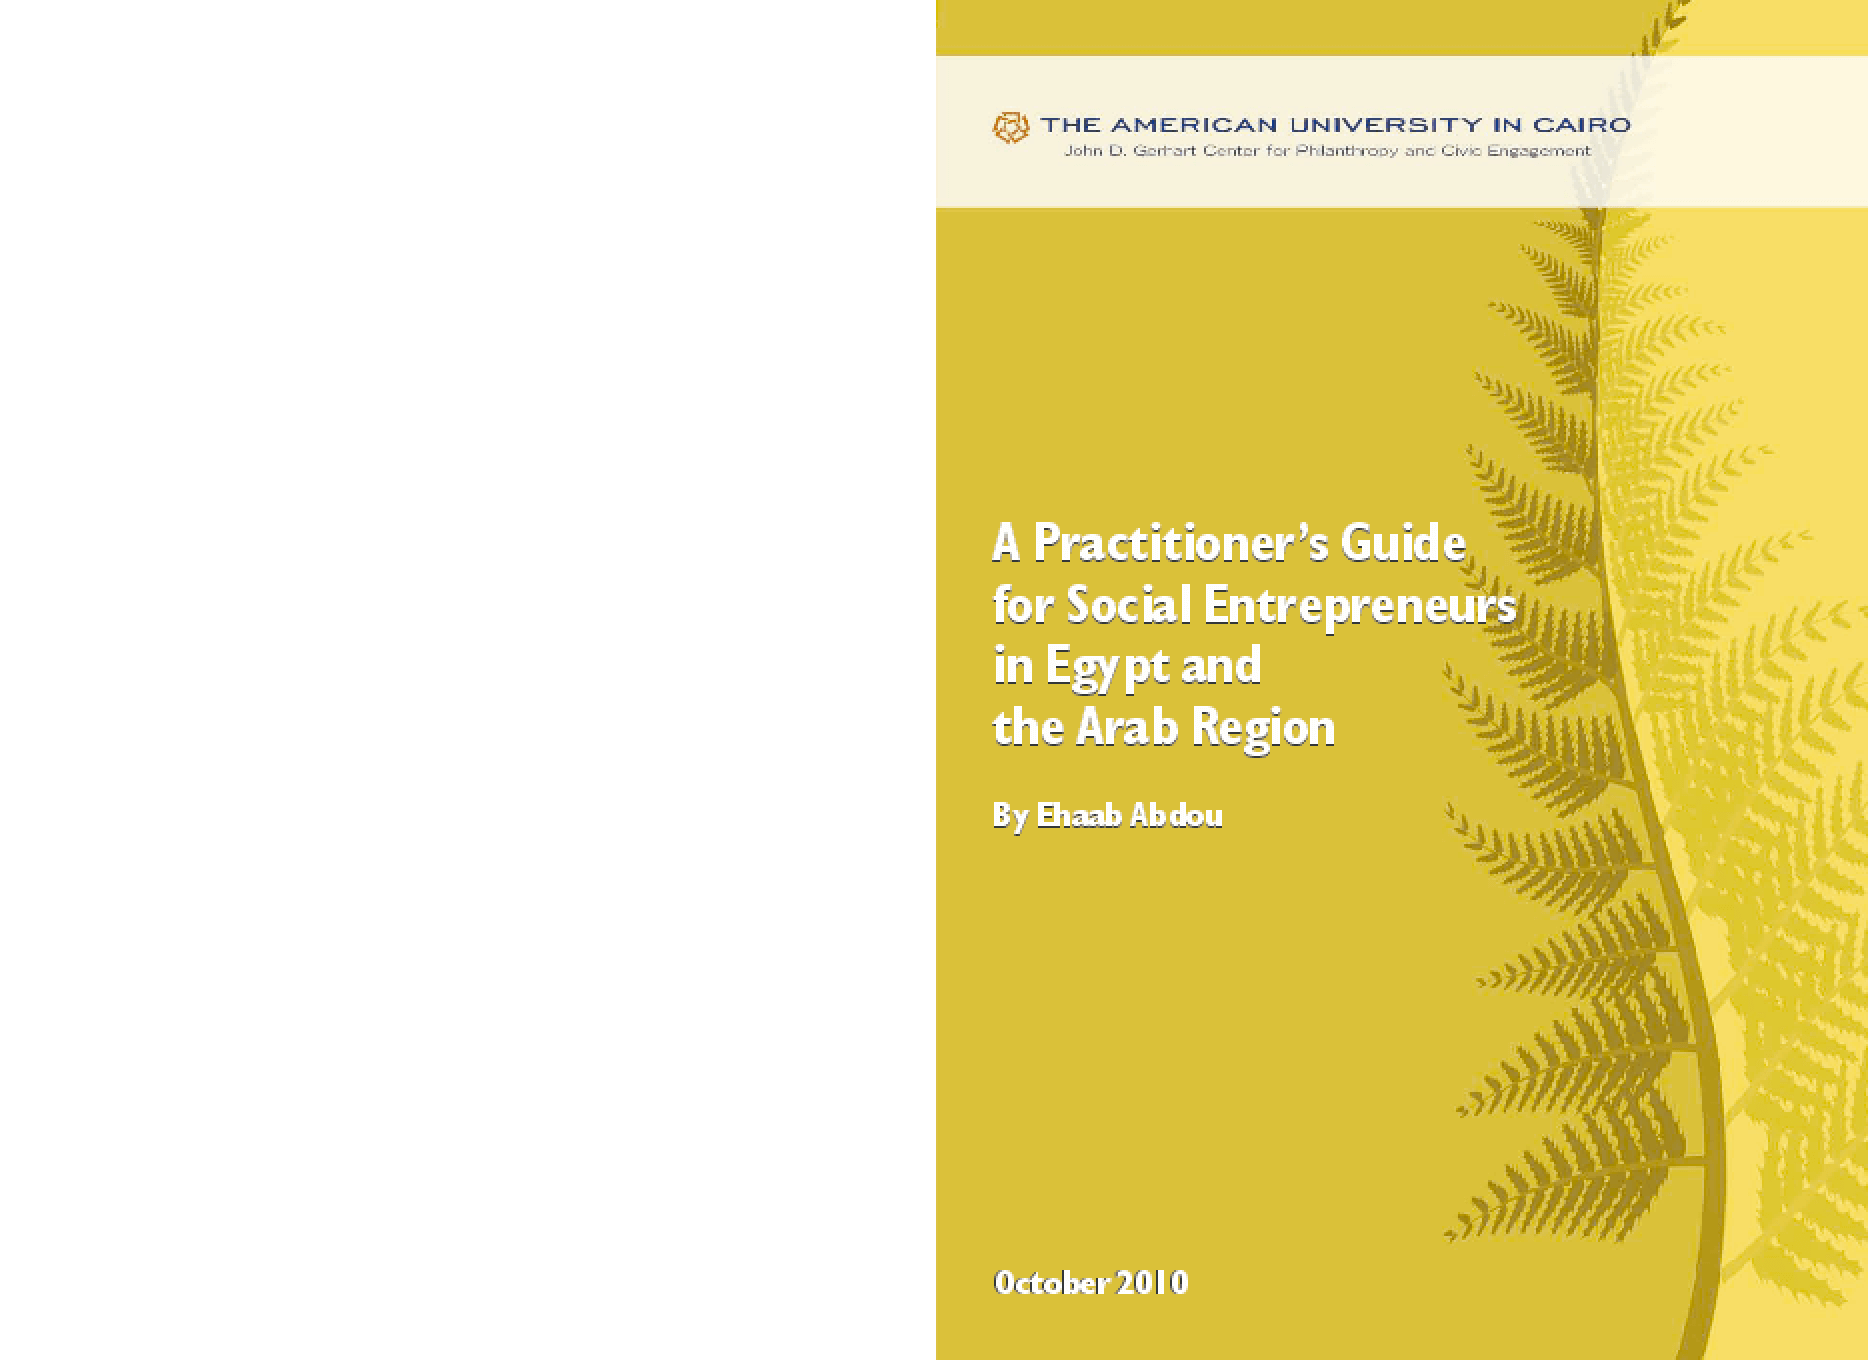 A Practitioner's Guide for Social Entrepreneurs in Egypt and the Arab Region